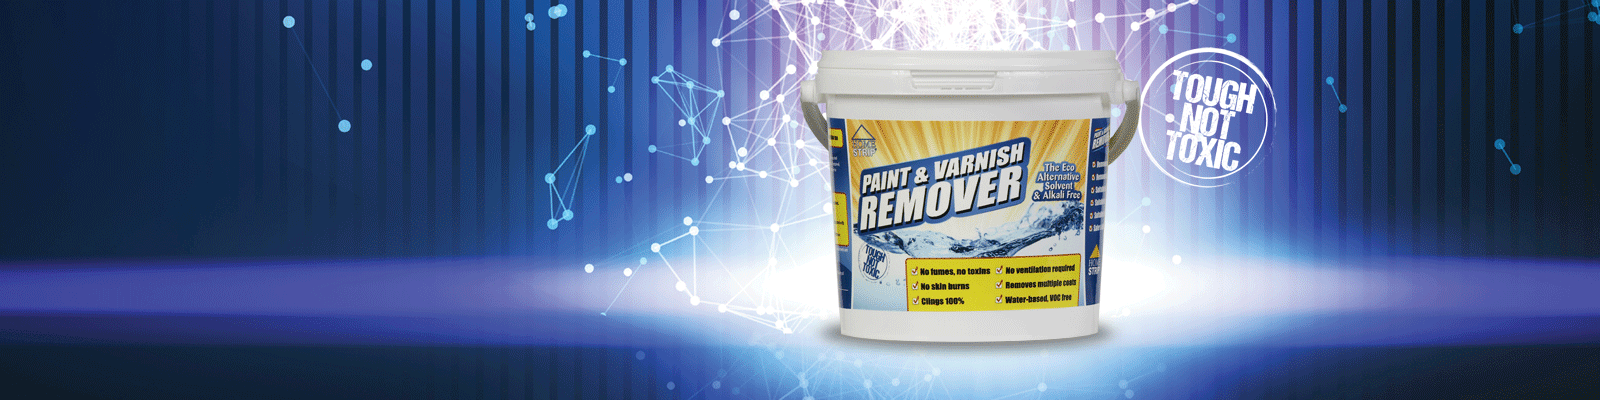 paint and varnish remover UK